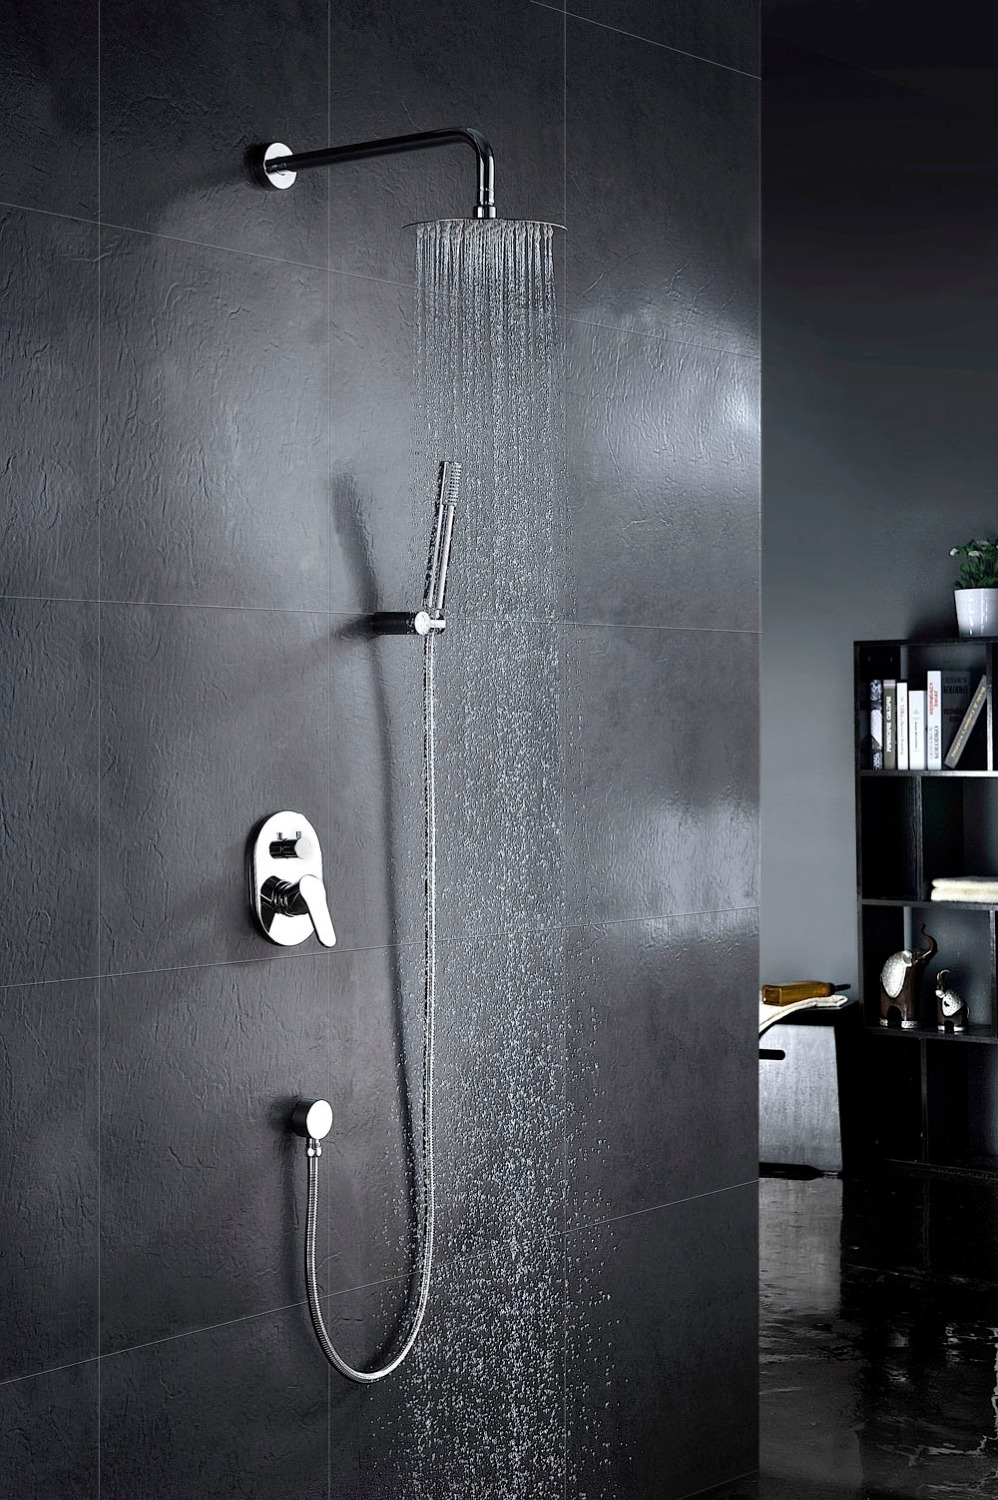 Concealed Shower Mixer With Diverter Brass Shower Arm with 8Stainless Steel Shower Head Brass